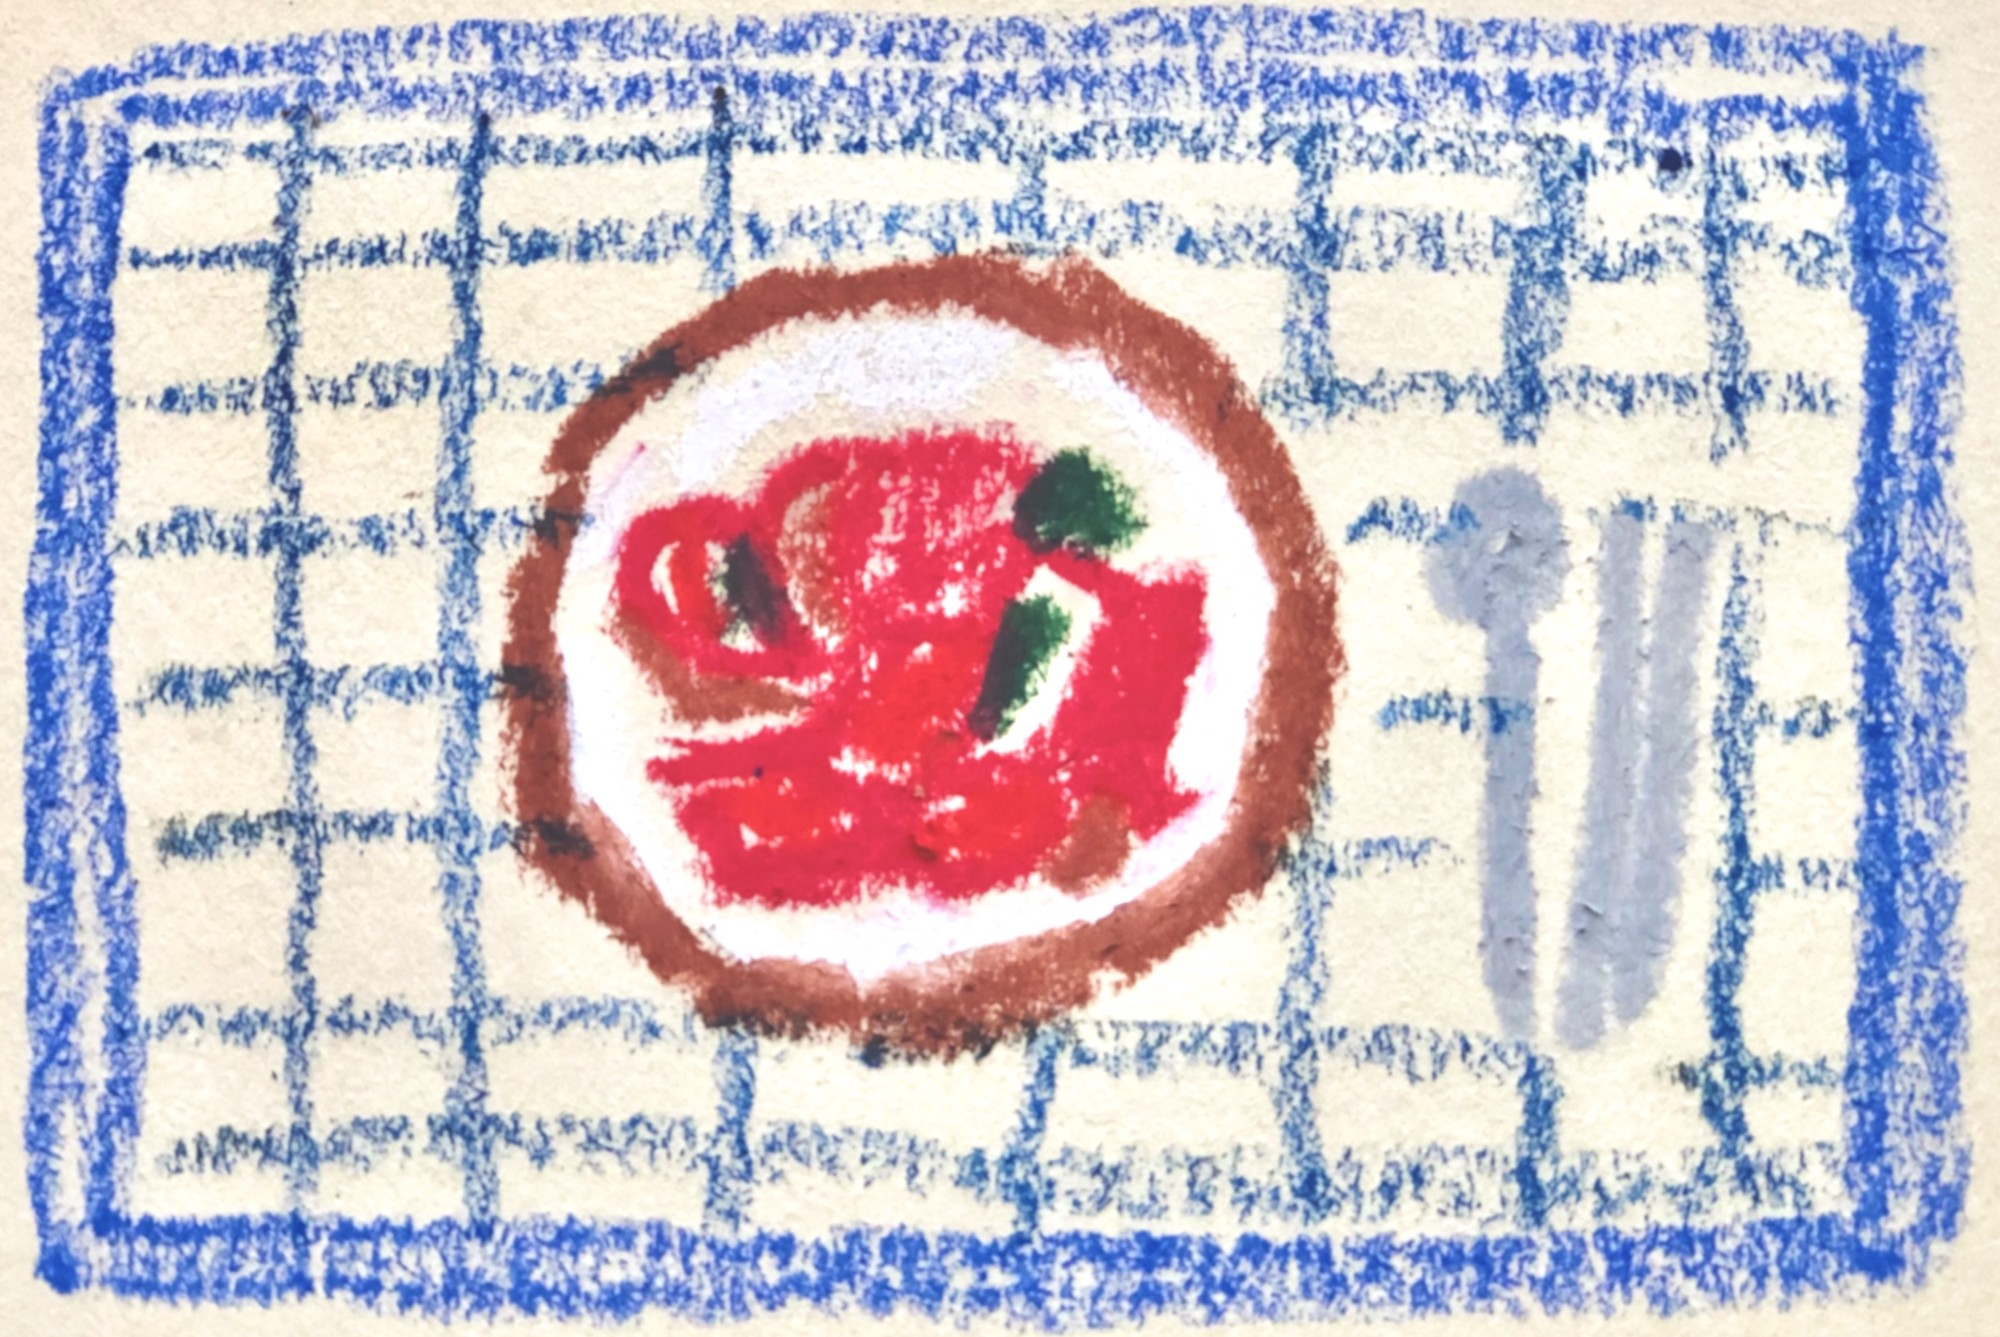 Simple crayon drawing of a dish of kimchi, a spoon, and a set of chopsticks on a blue-gridded placemat.